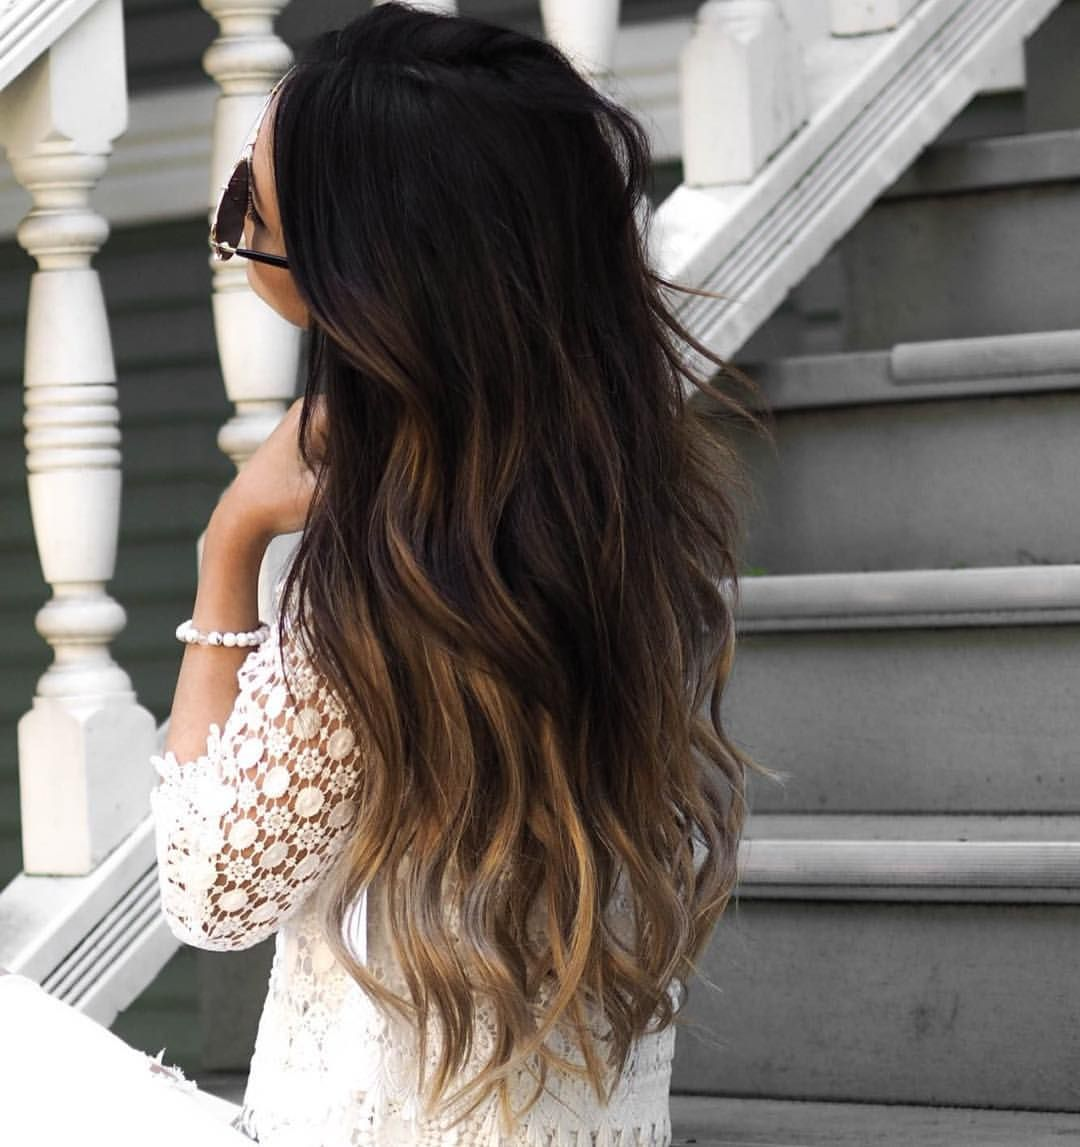 """Luxy Hair on Instagram: """"Ombré goals Double tap if you're a fan! ❤️ @nelyakhryukin's Ombre Blonde #luxyhair extensions blend in so beautifully with her hair What a fun way to change up your look without any damage """""""